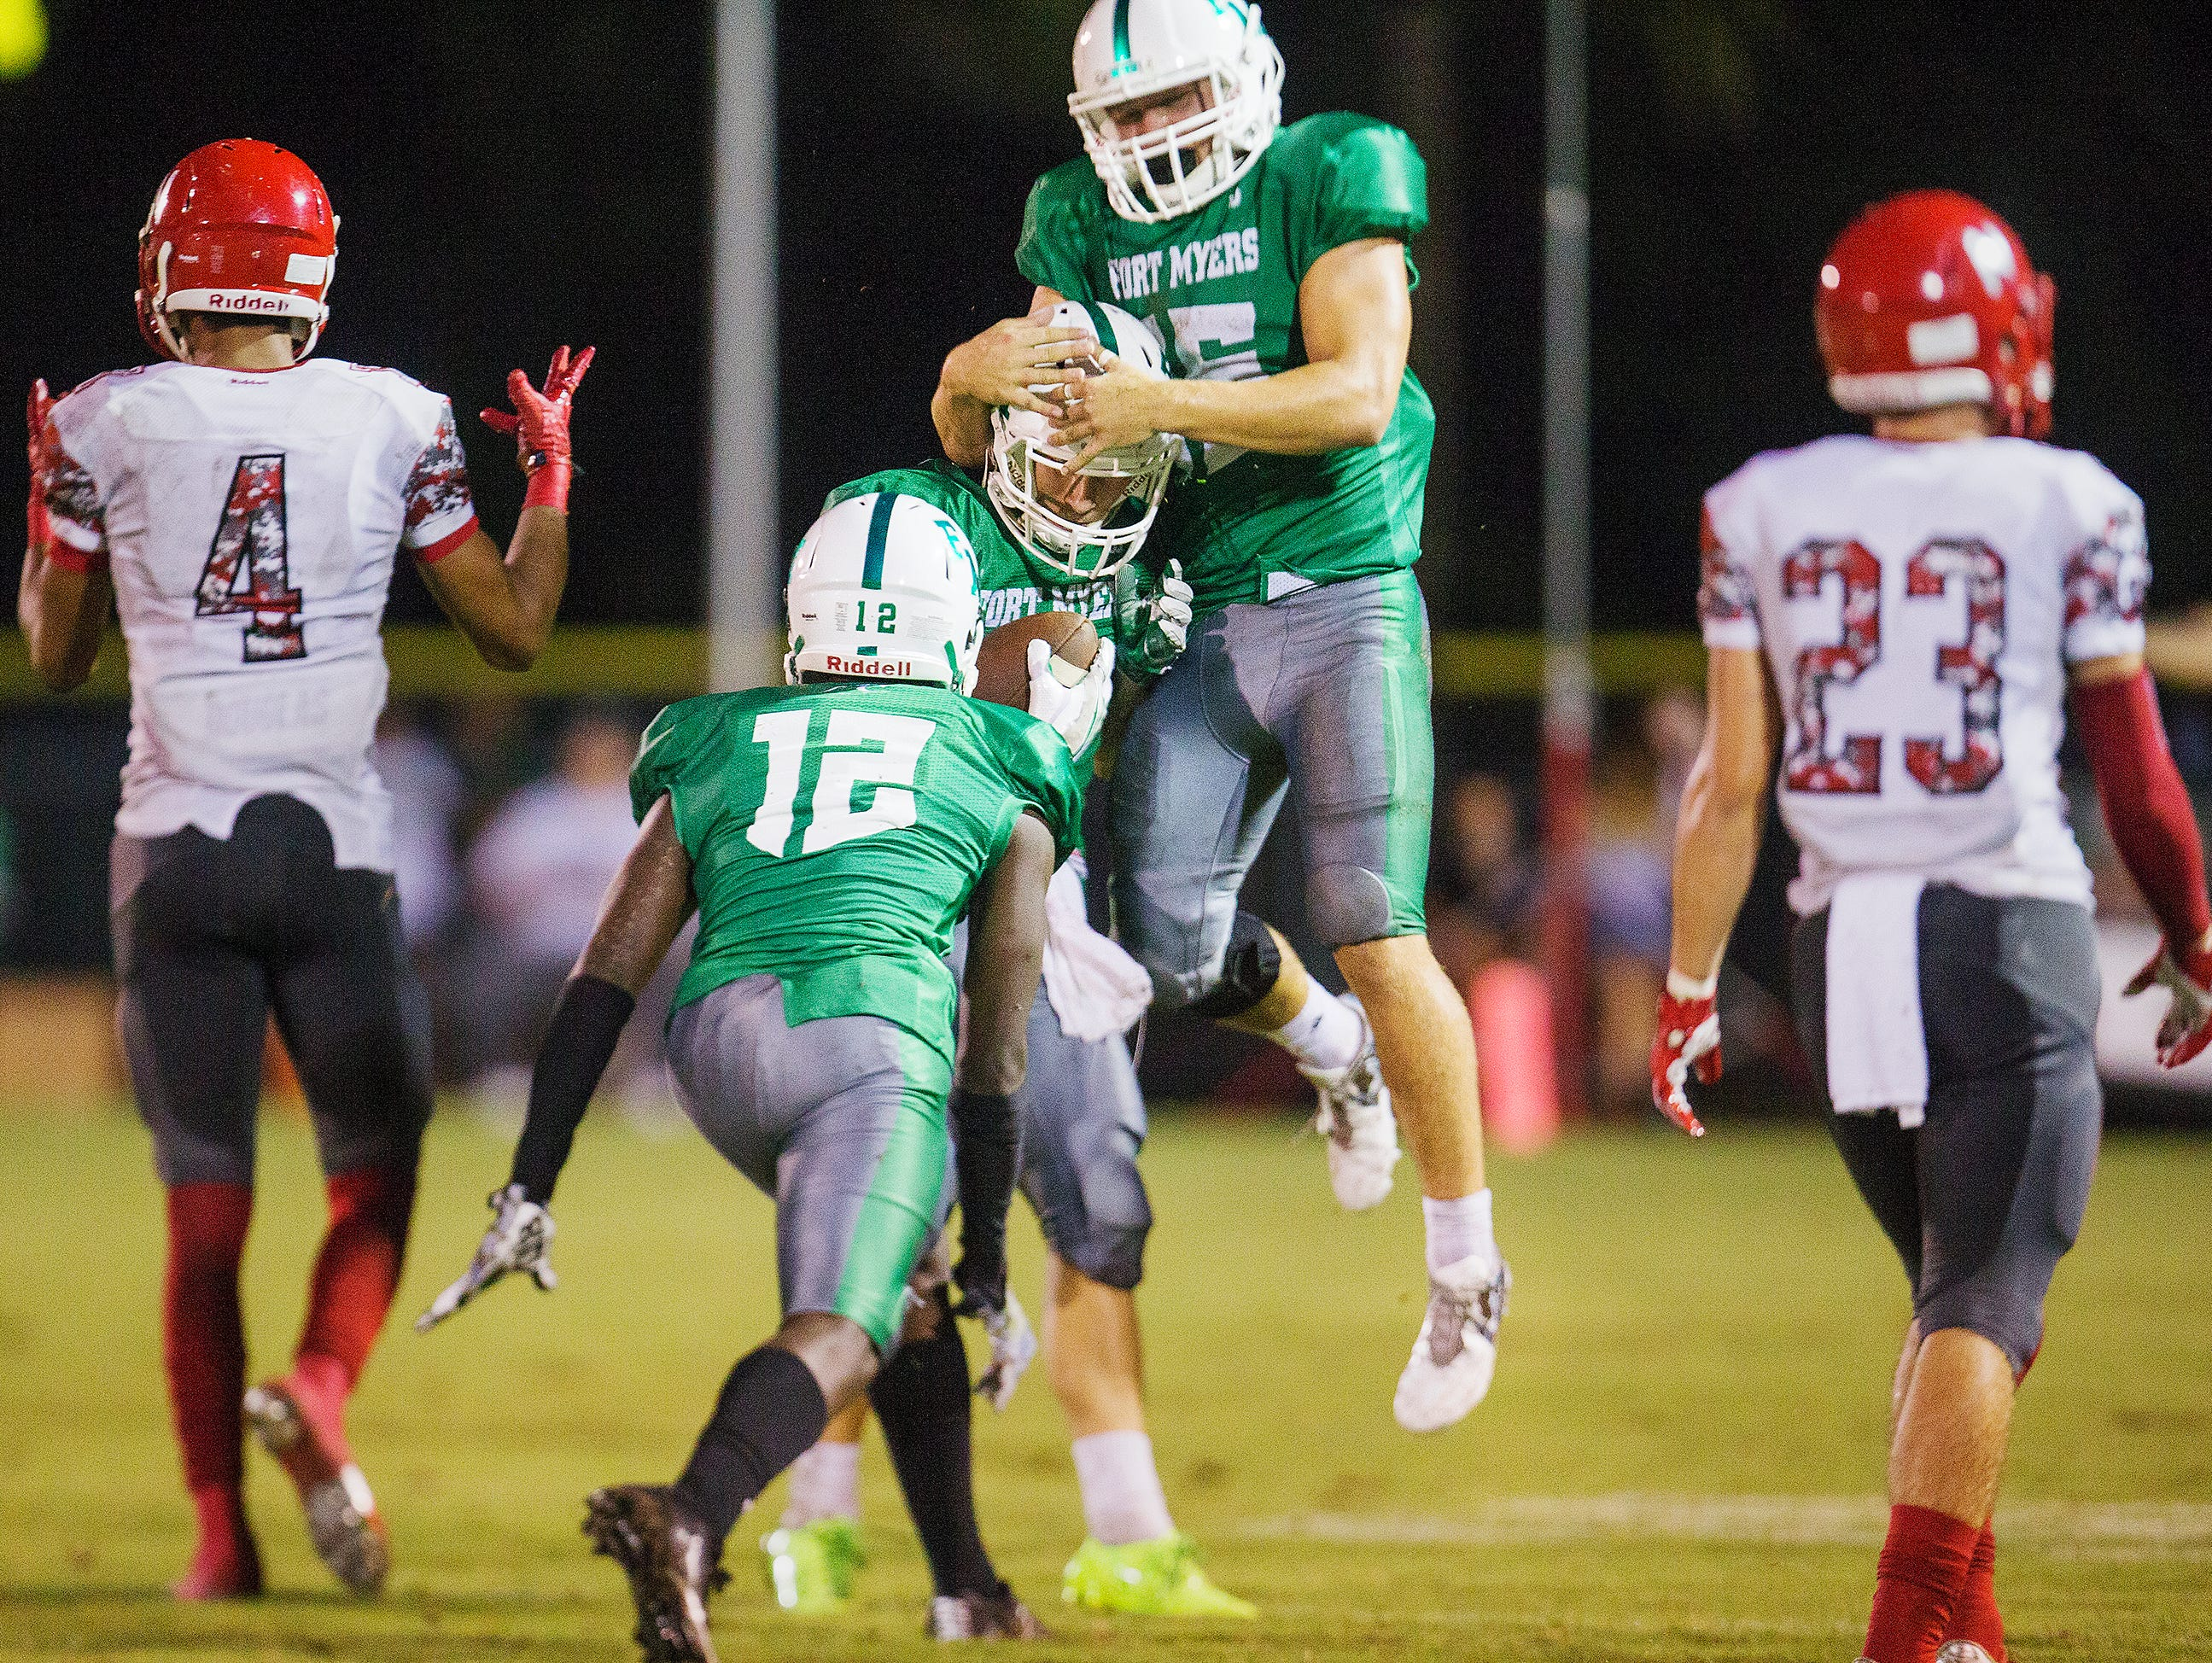 Fort Myers High School players celebrate an interception by Ben Stobaugh, center, against North Fort Myers during first quarter play Friday at Fort Myers High School.